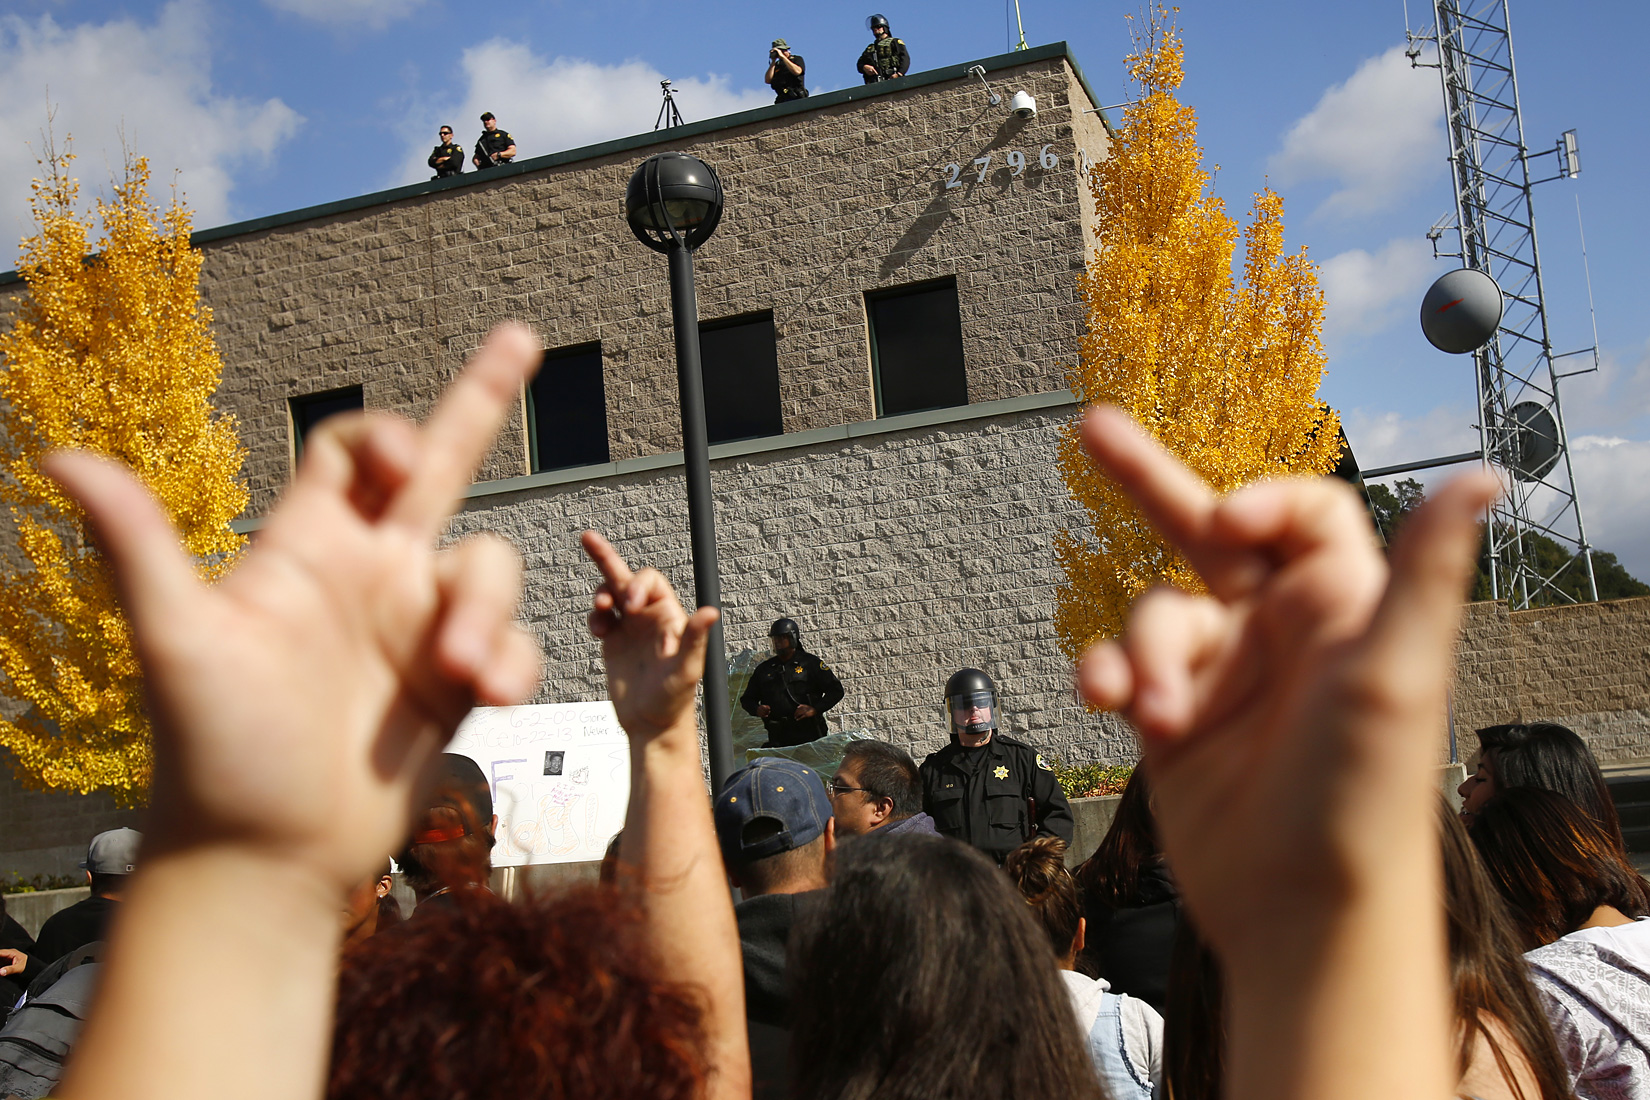 Protestors flip off Sonoma County Sheriff's deputies protecting their offices during a march in reaction to the death of 13-year-old Andy Lopez in Santa Rosa on Tuesday, October 29, 2013. (Conner Jay/The Press Democrat)